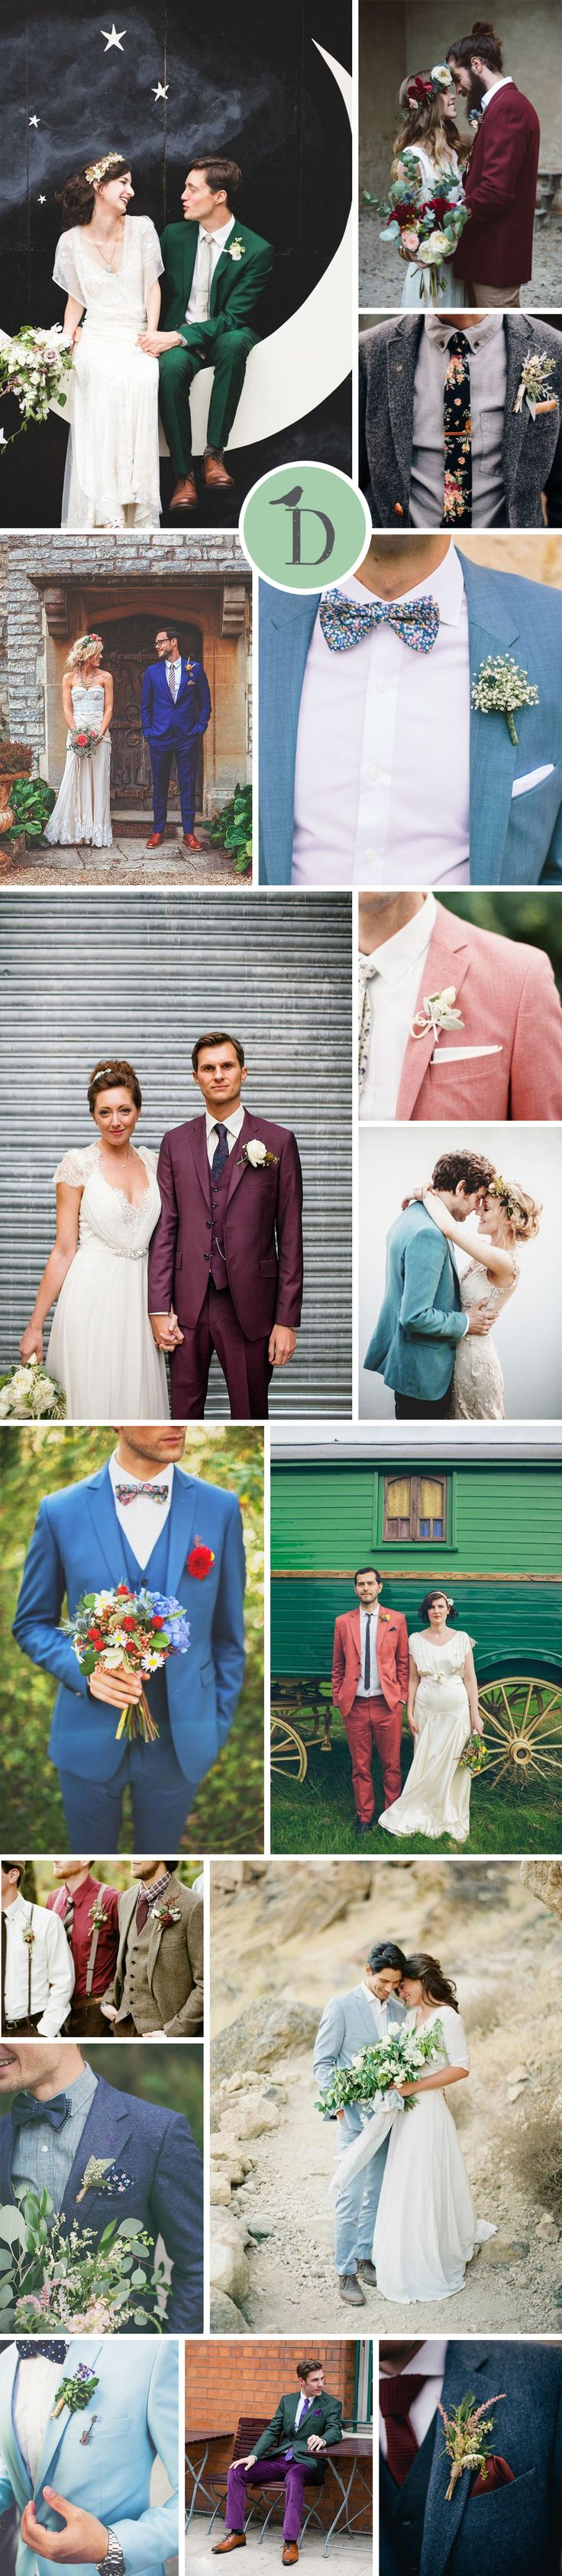 COLOURFUL WEDDING SUITS FOR GROOMS Come on grooms, it's time to banish the boring grey and black and instead embrace a colourful wedding suit! Whether your style is preppy linen, or muted indie burgundy, let your suit shout your style.